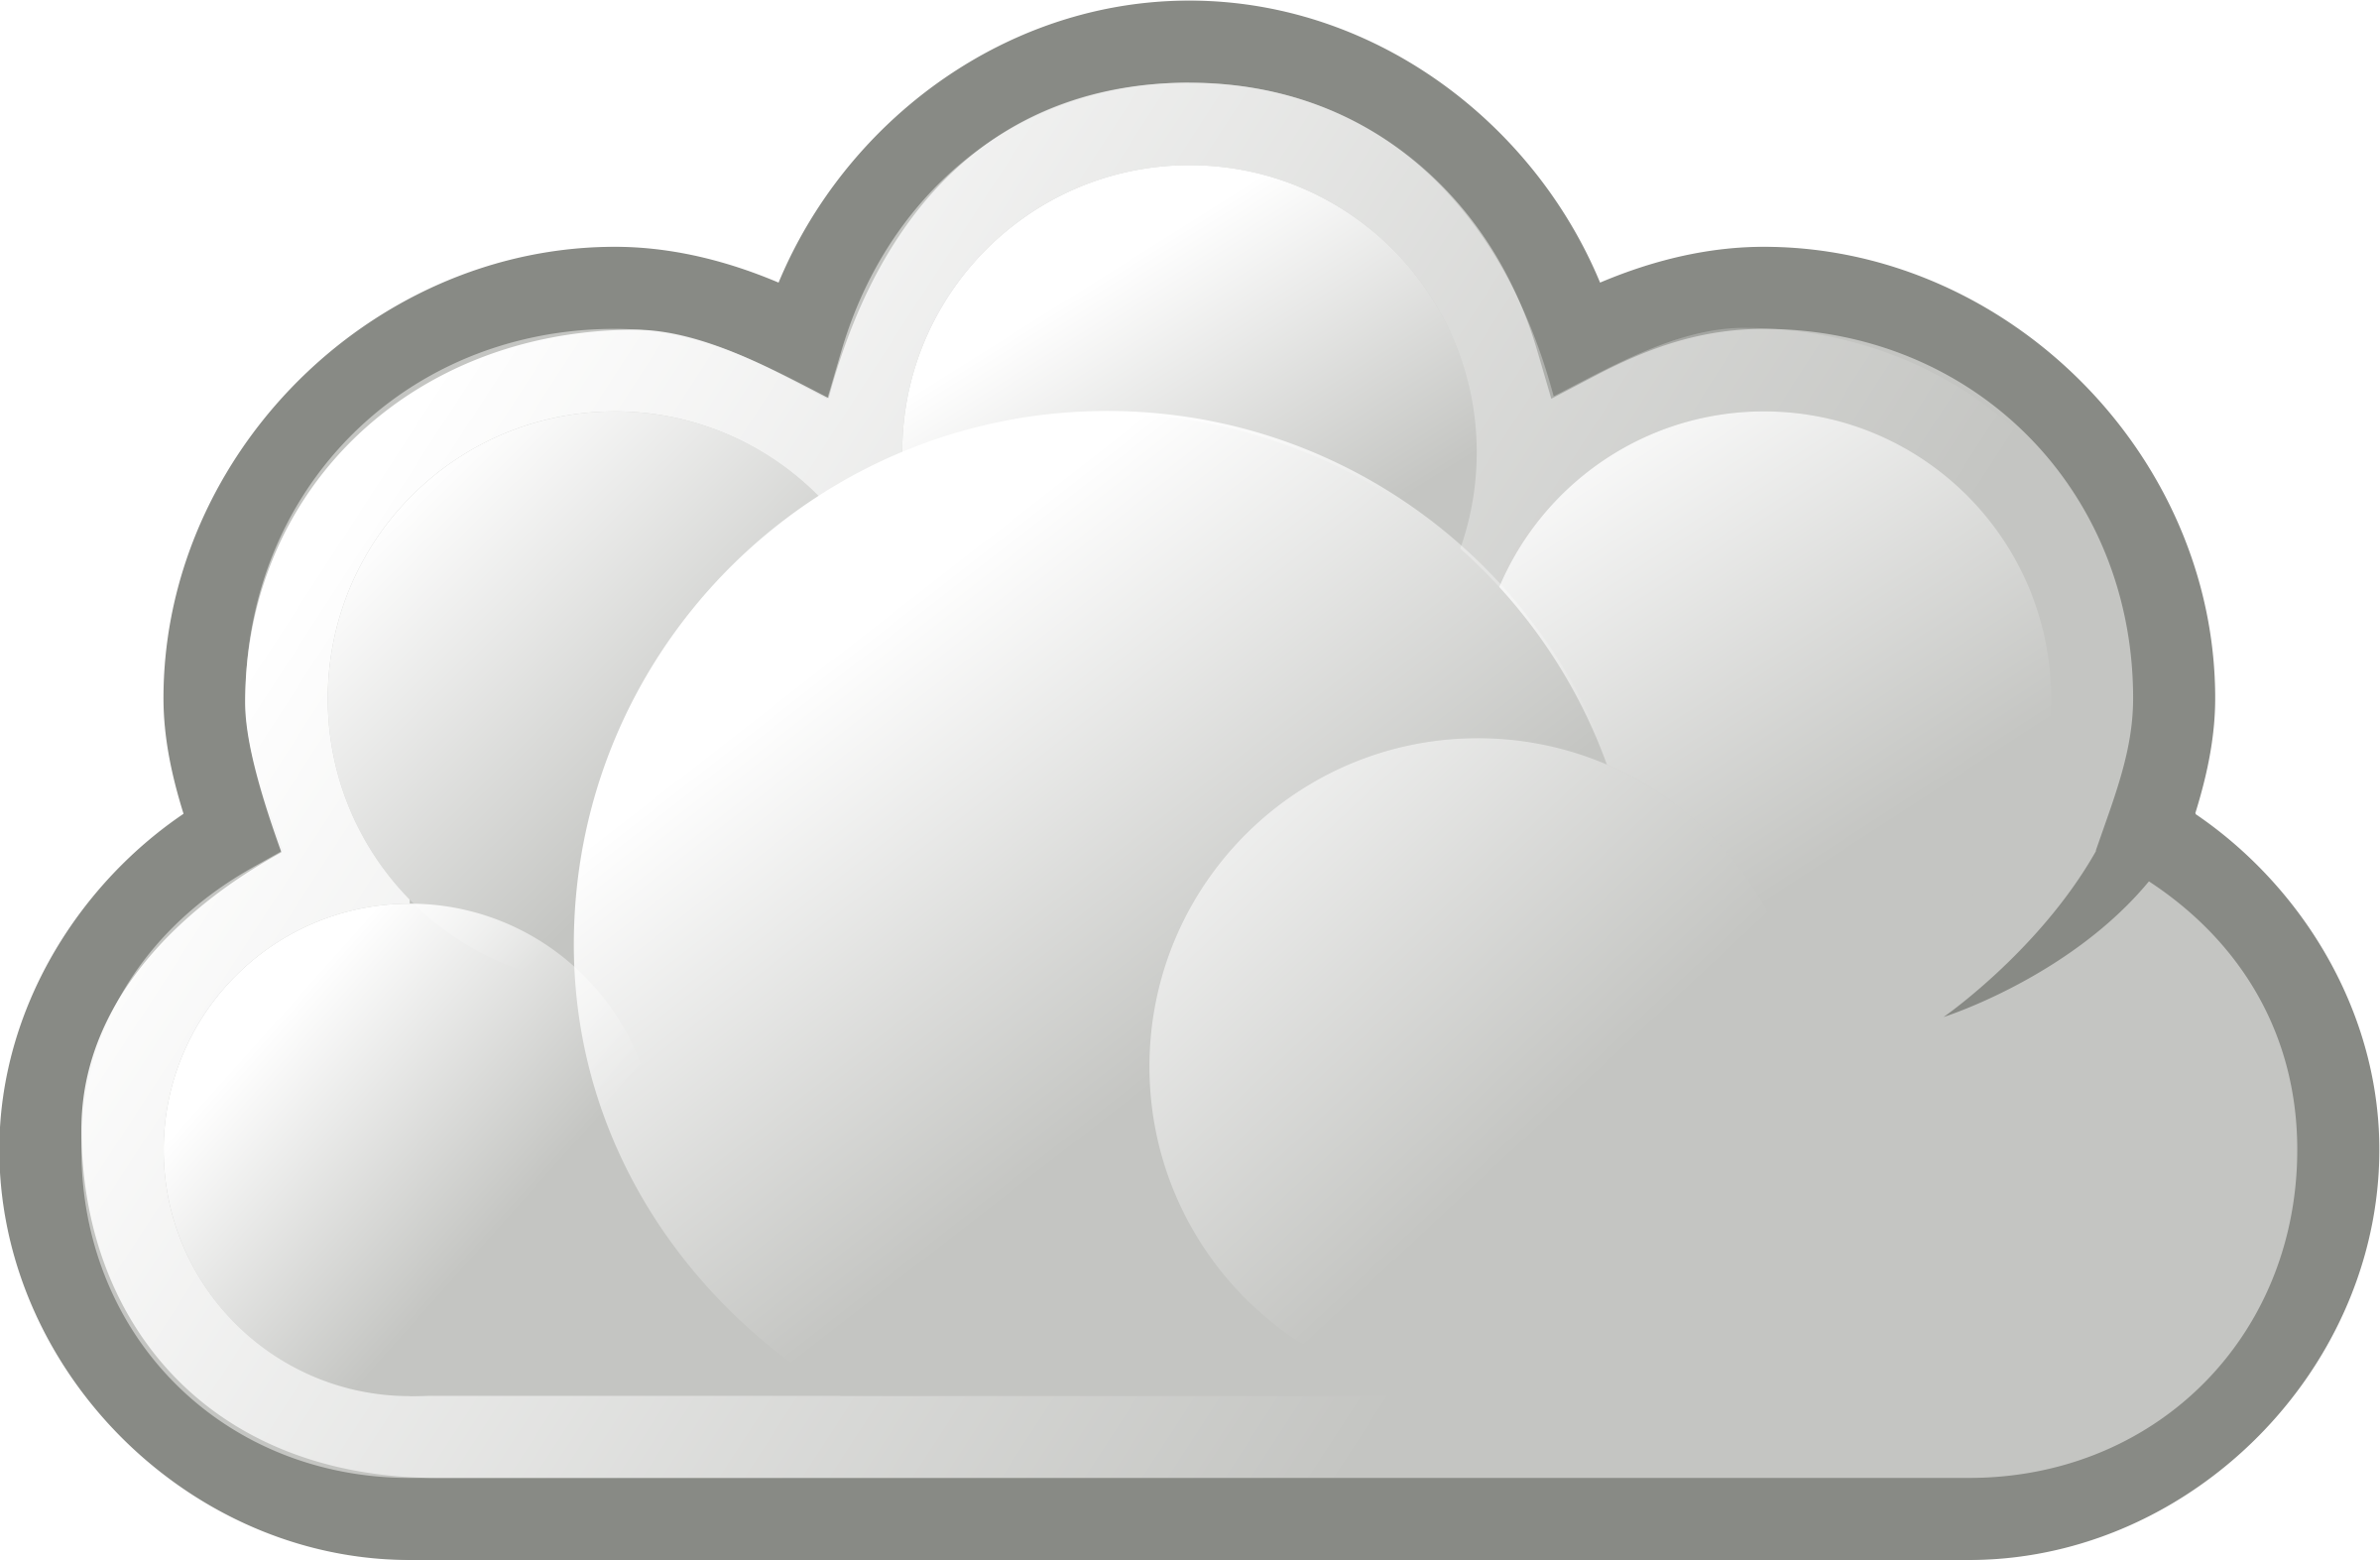 Nubes caricatura png. Clipart stylized basic cloud